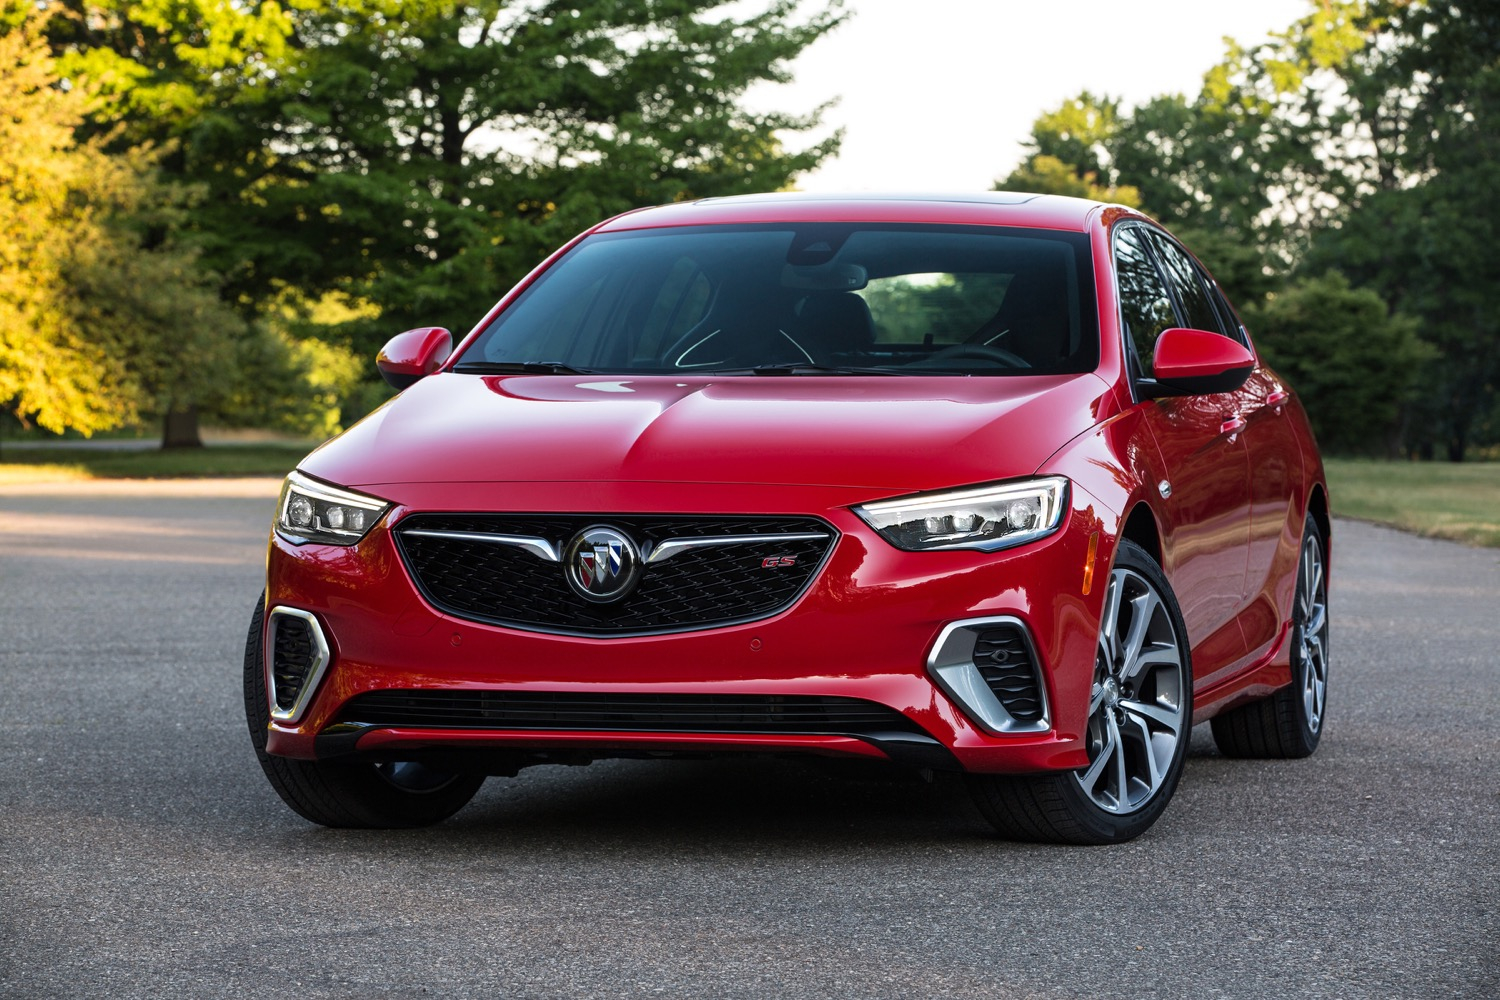 We Have Some Beef With This 2018 Buick Regal Gs Review | Gm 2022 Buick Regal Gs Performance, Reviews, Awd